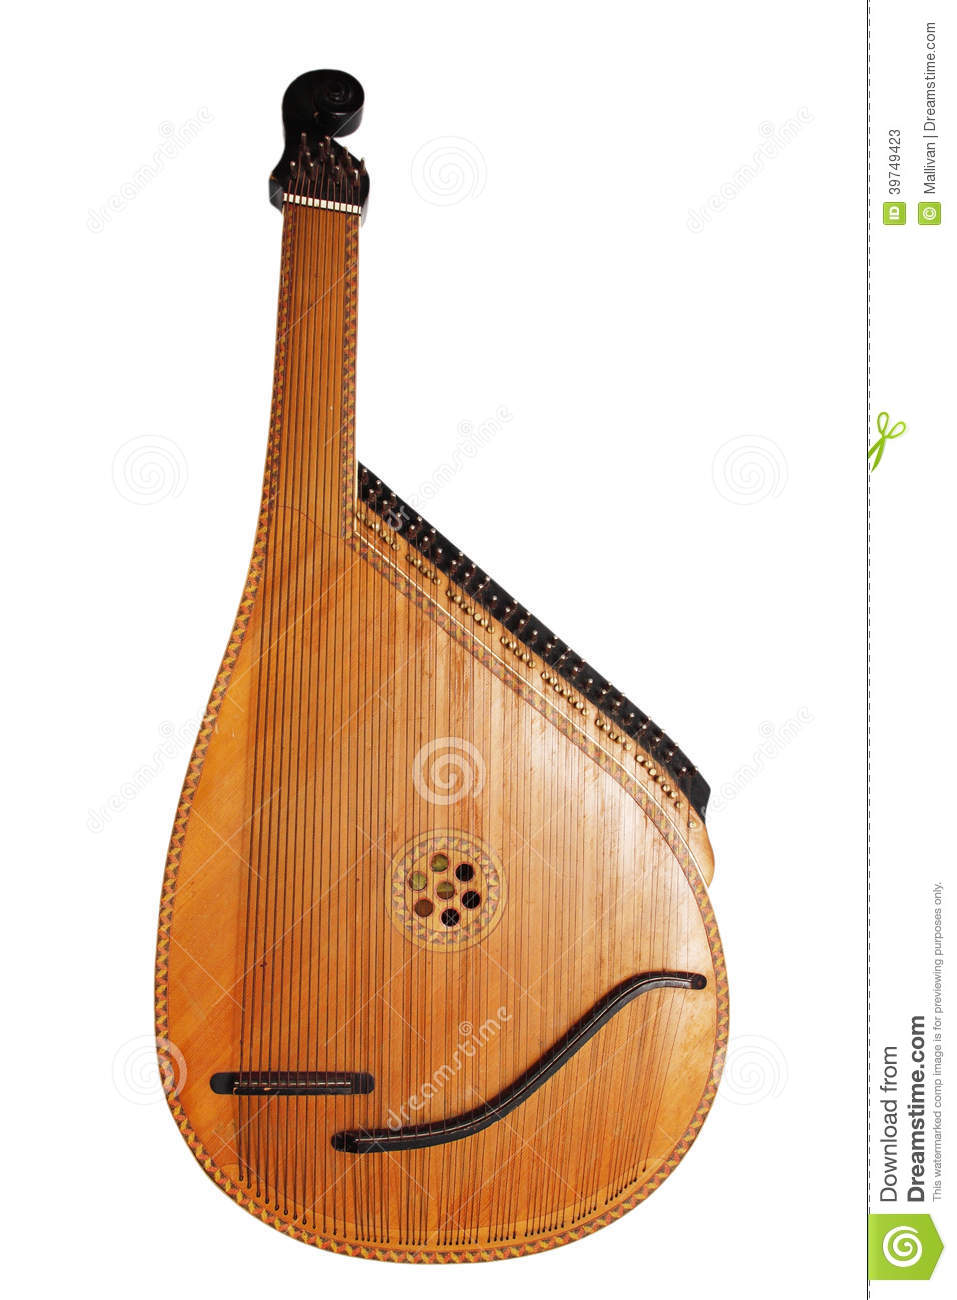 traditional russian folk instruments essay 1864 is the year wnen stakhovich's essay was published as a separate brochure   essay he also publihed several russian folk songs with a simplistic guitar   in mashkevich funds of glinka museum and was reprinted twice in soviet era.